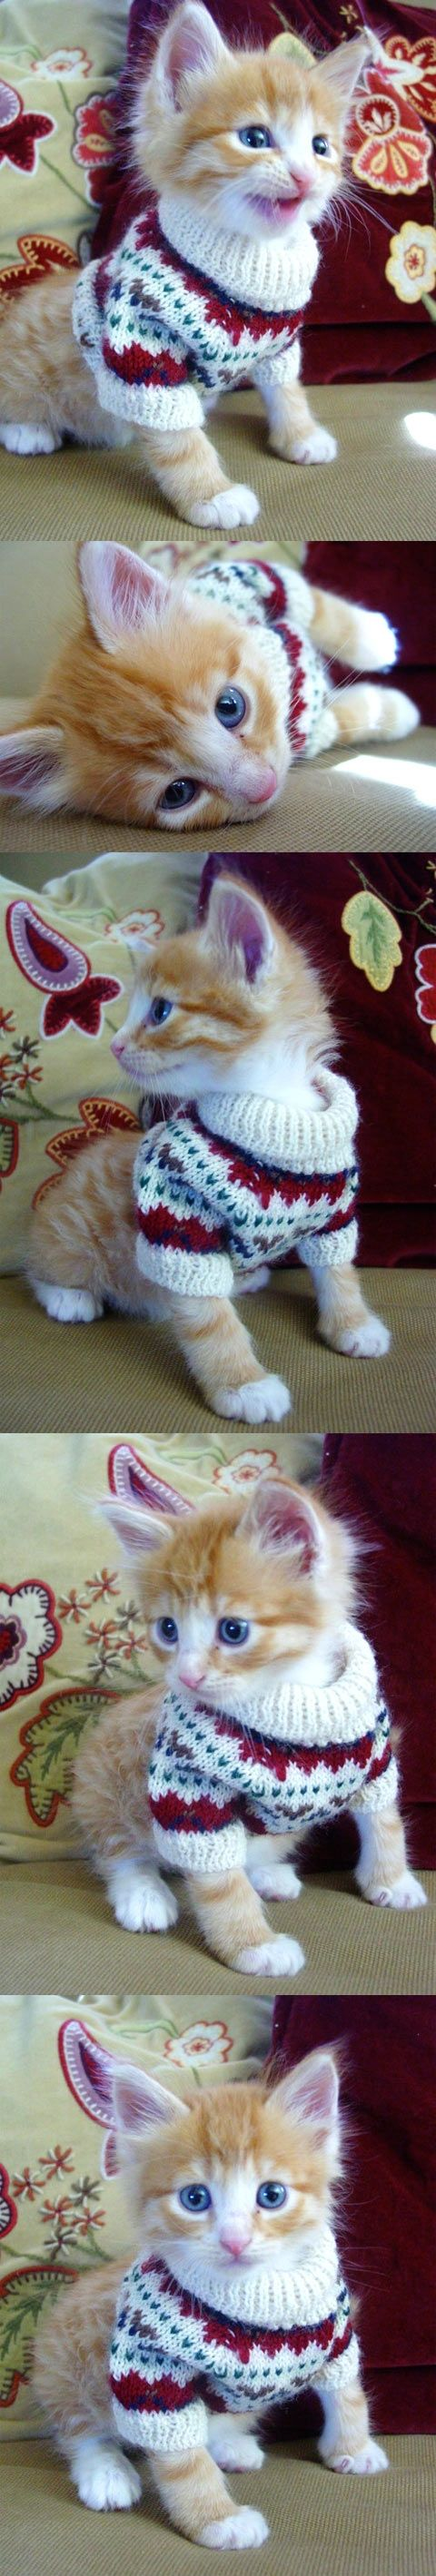 15 Cats Who Might Not Know They Are Cats